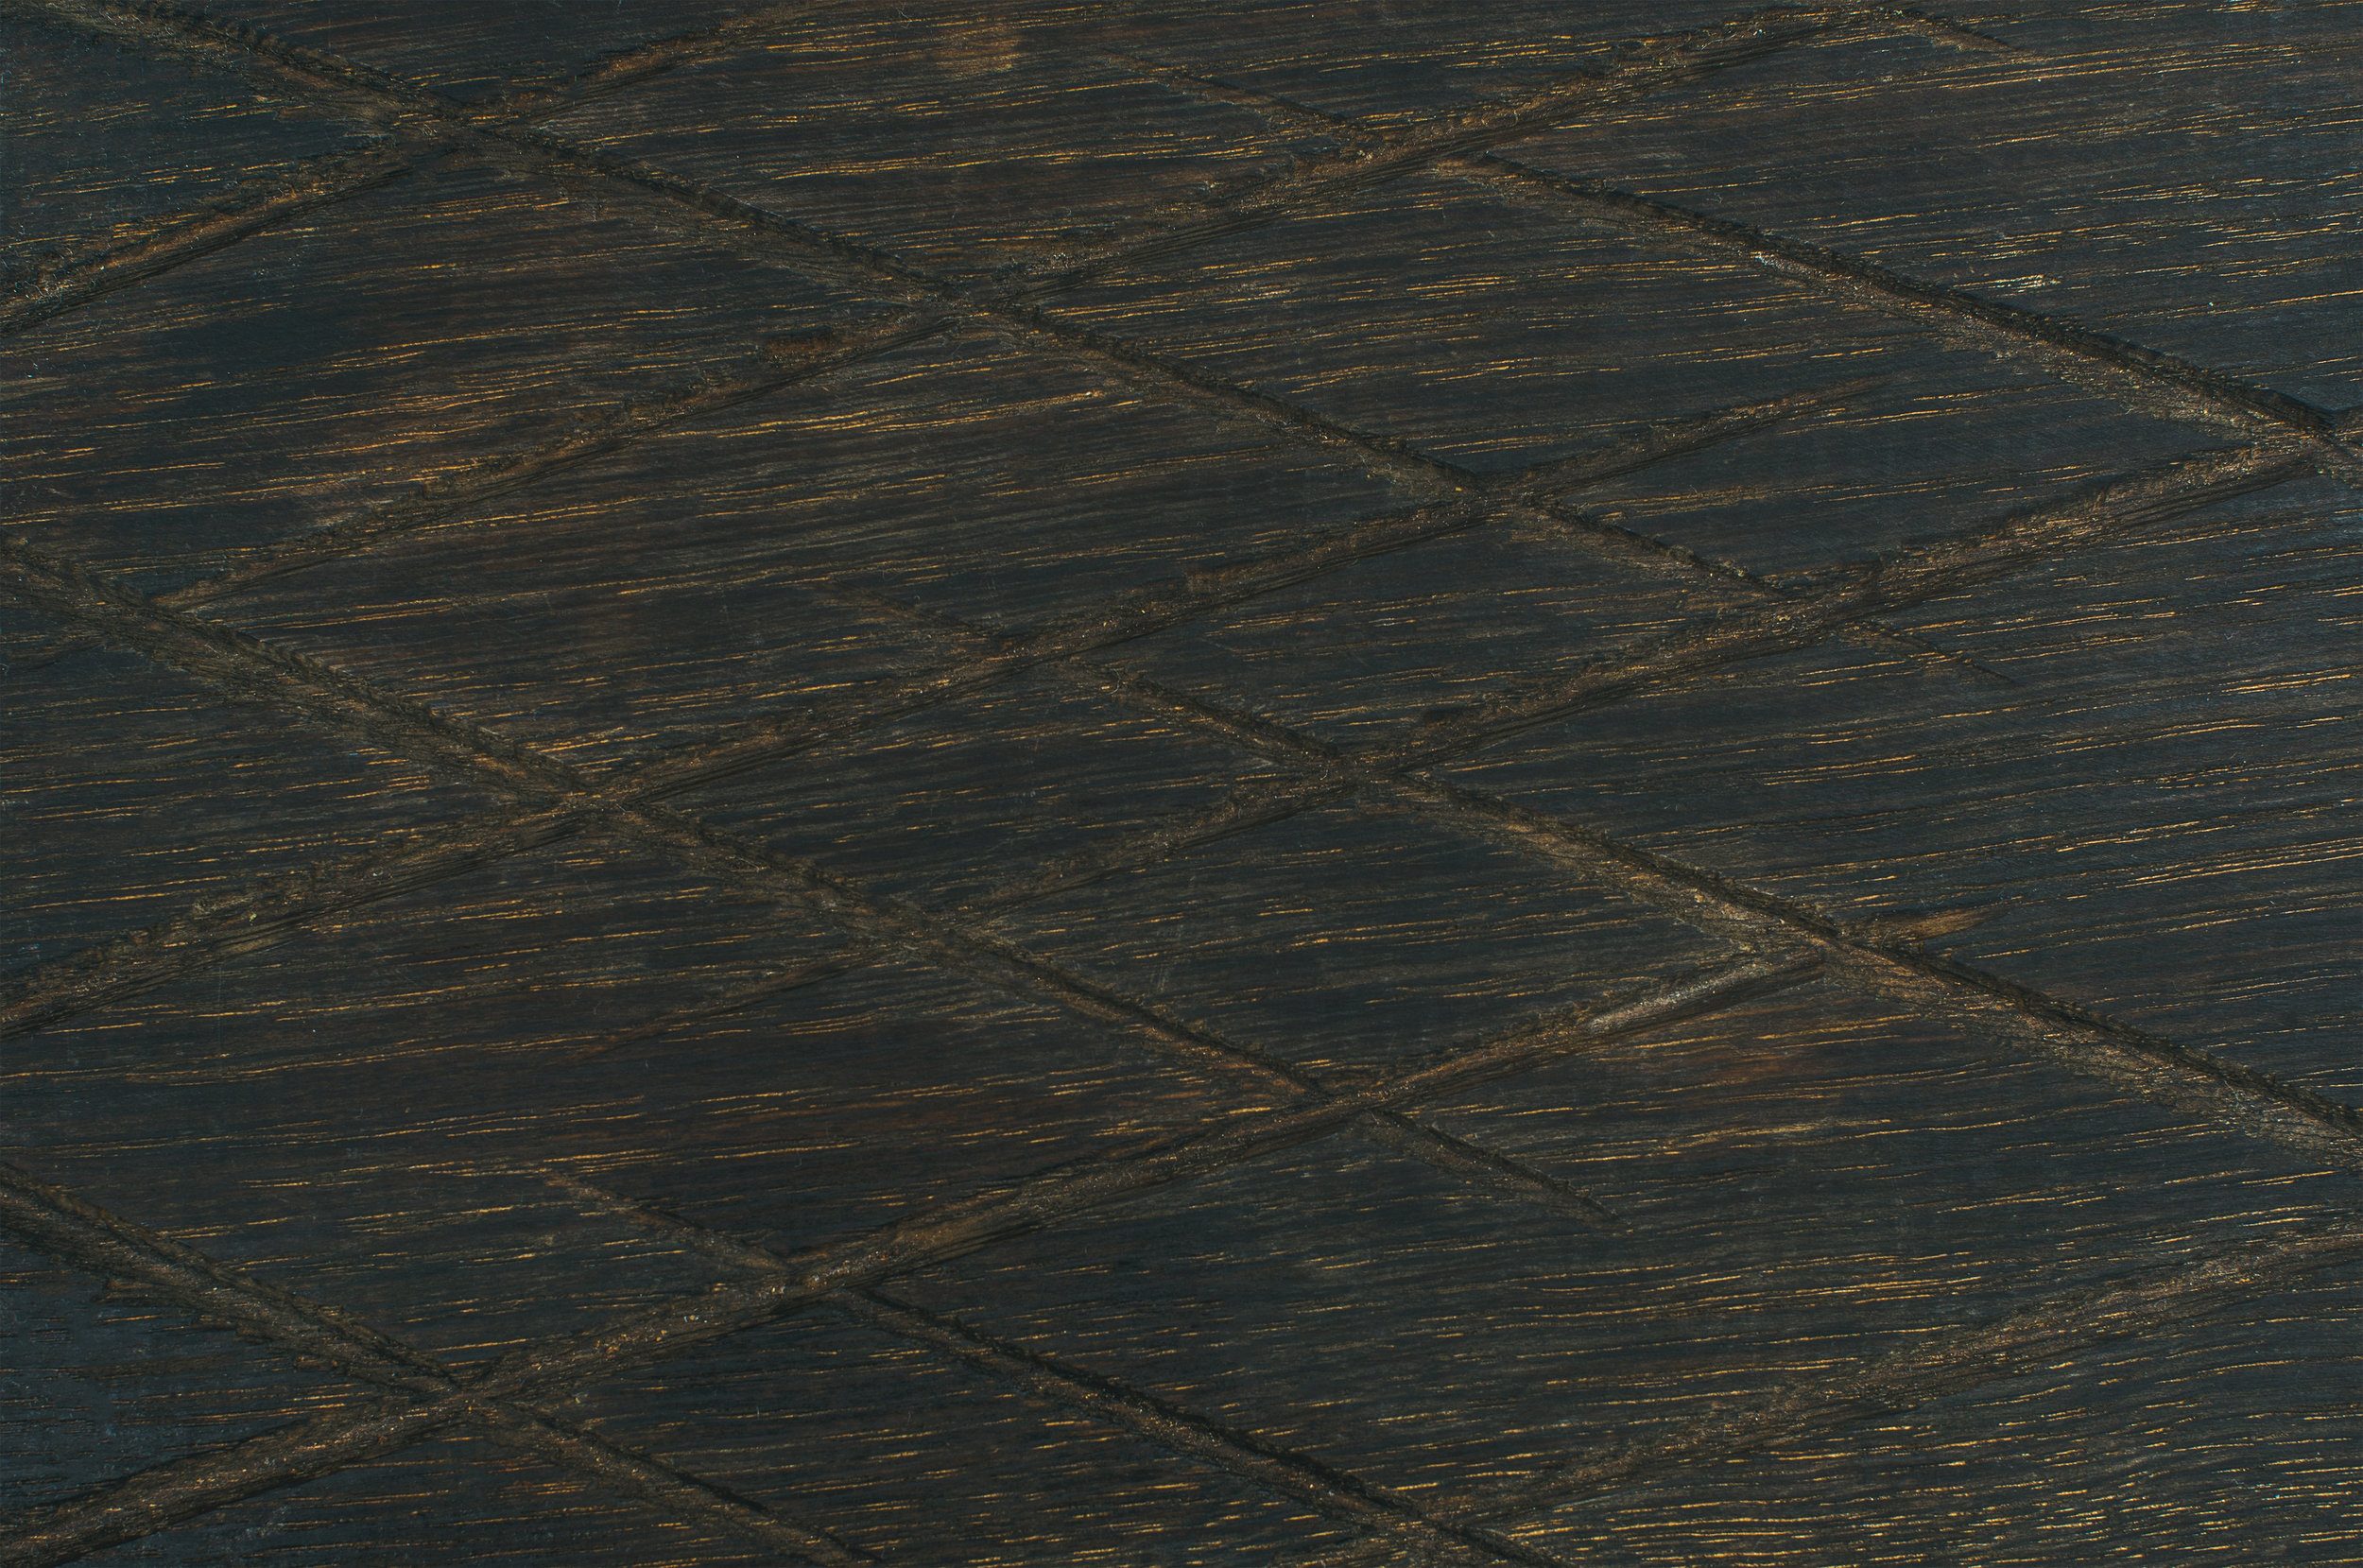 dark-toned-natural-oak-wood-texture-with-notches-P5T9FGS.jpg